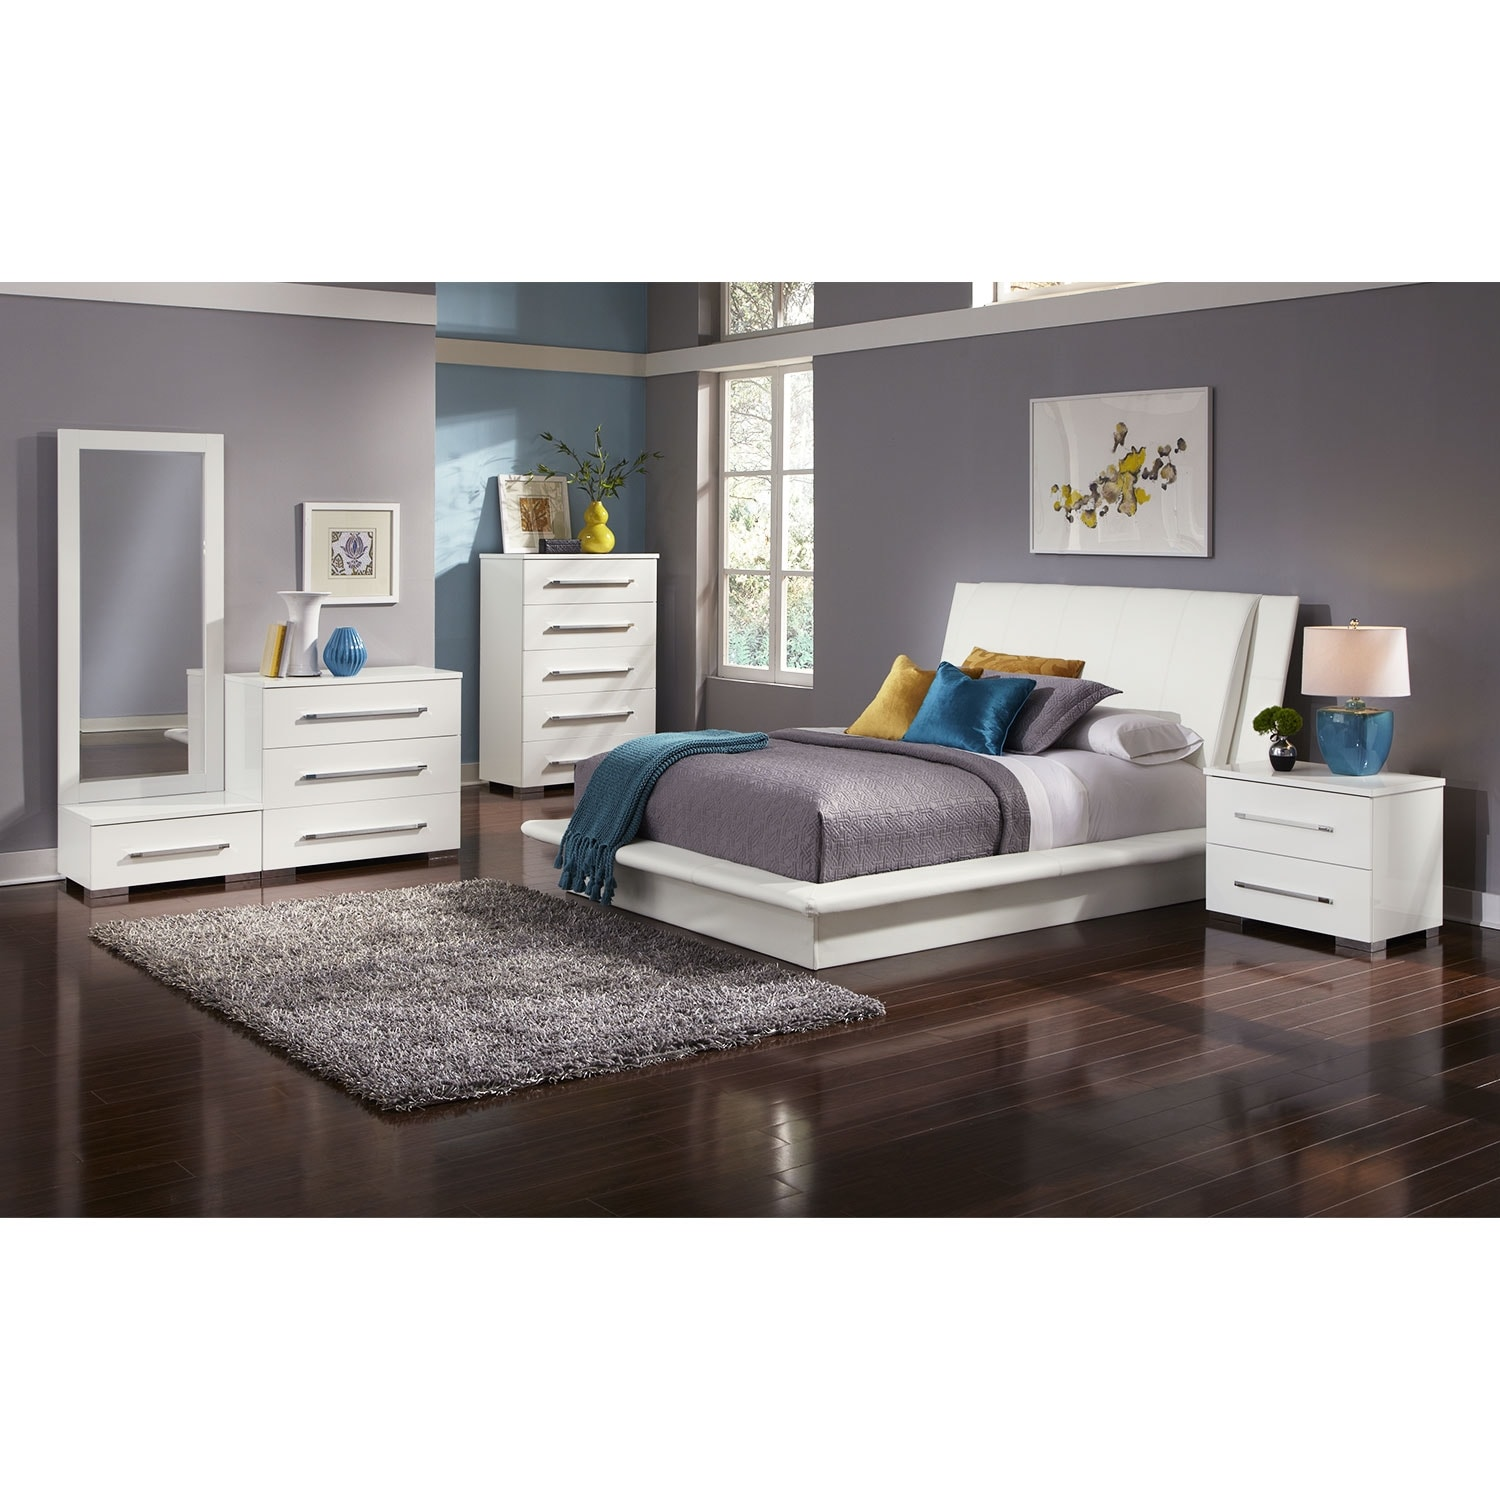 dimora 7-piece queen upholstered bedroom set - white | american